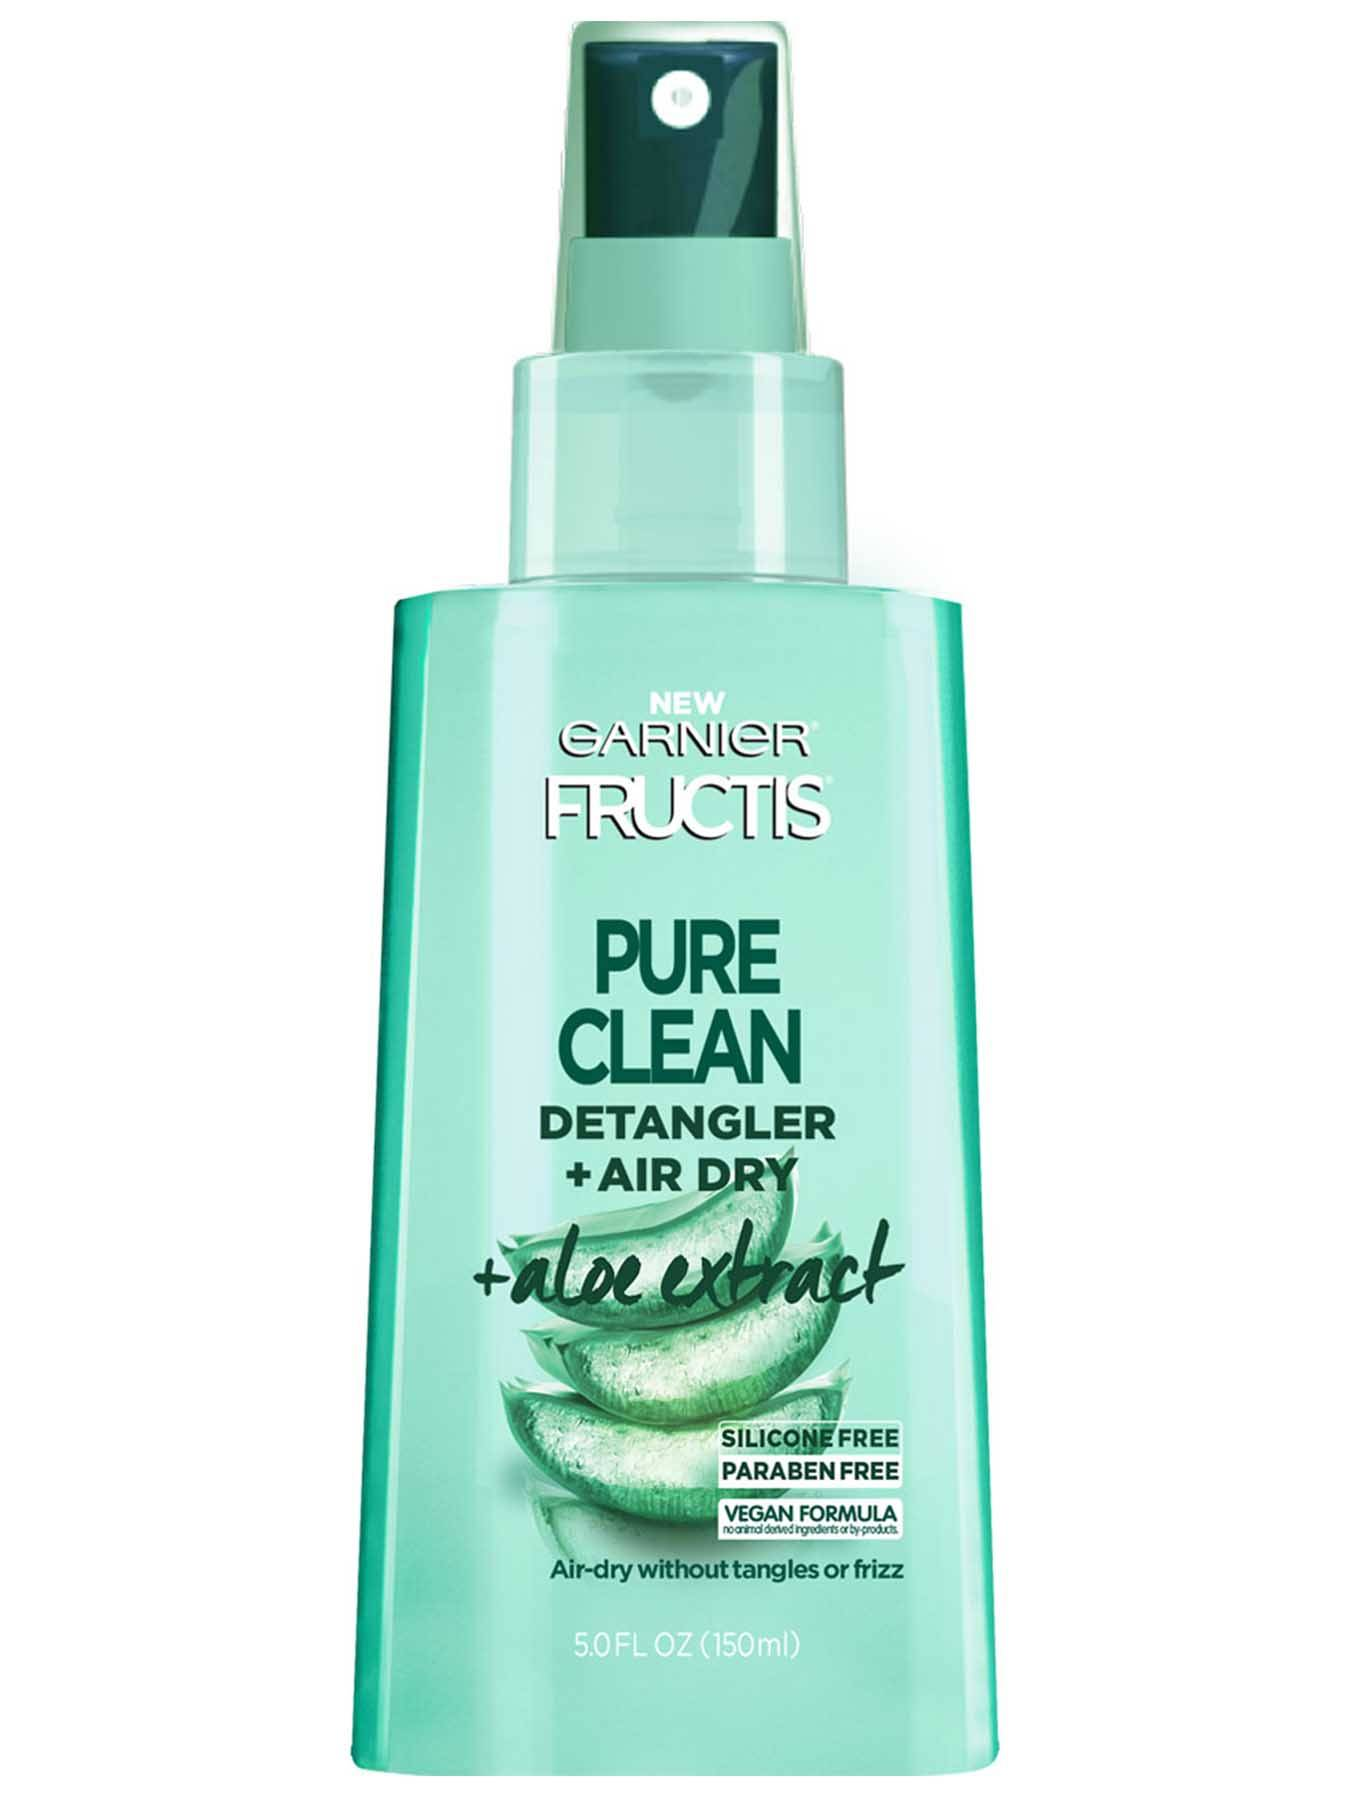 Garnier Pure Clean Detangle Hair Care Pure Clean Detangler 5 fl oz